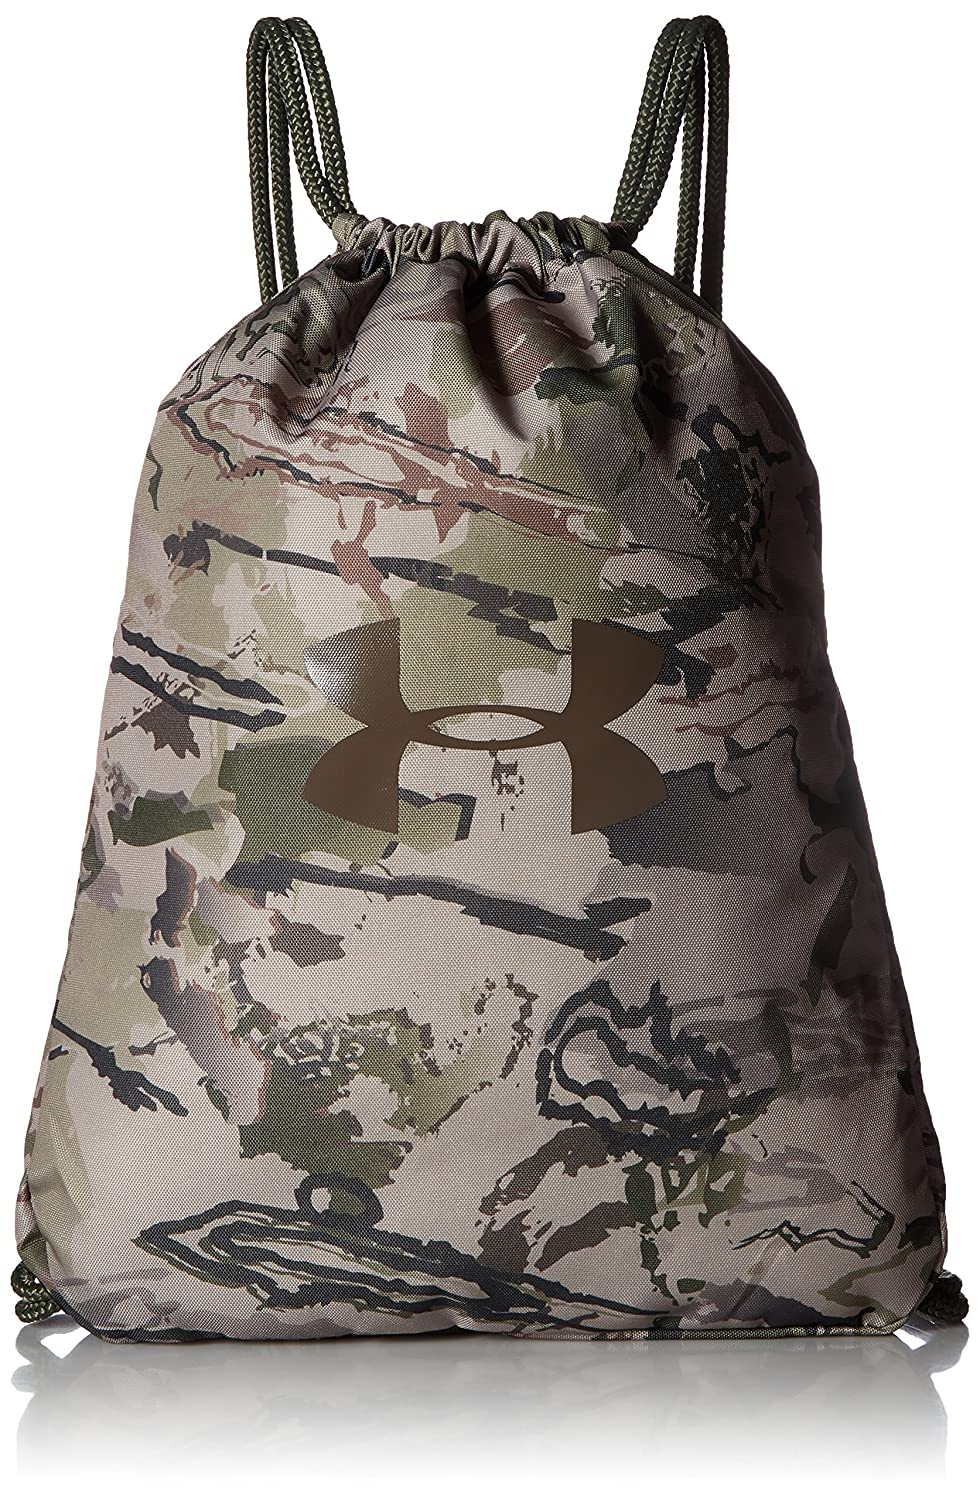 Under Armour UA Camo Sackpack One Size Fits All RIDGE REAPER BARREN   Amazon.ca  Sports   Outdoors 086568cf9c9f1